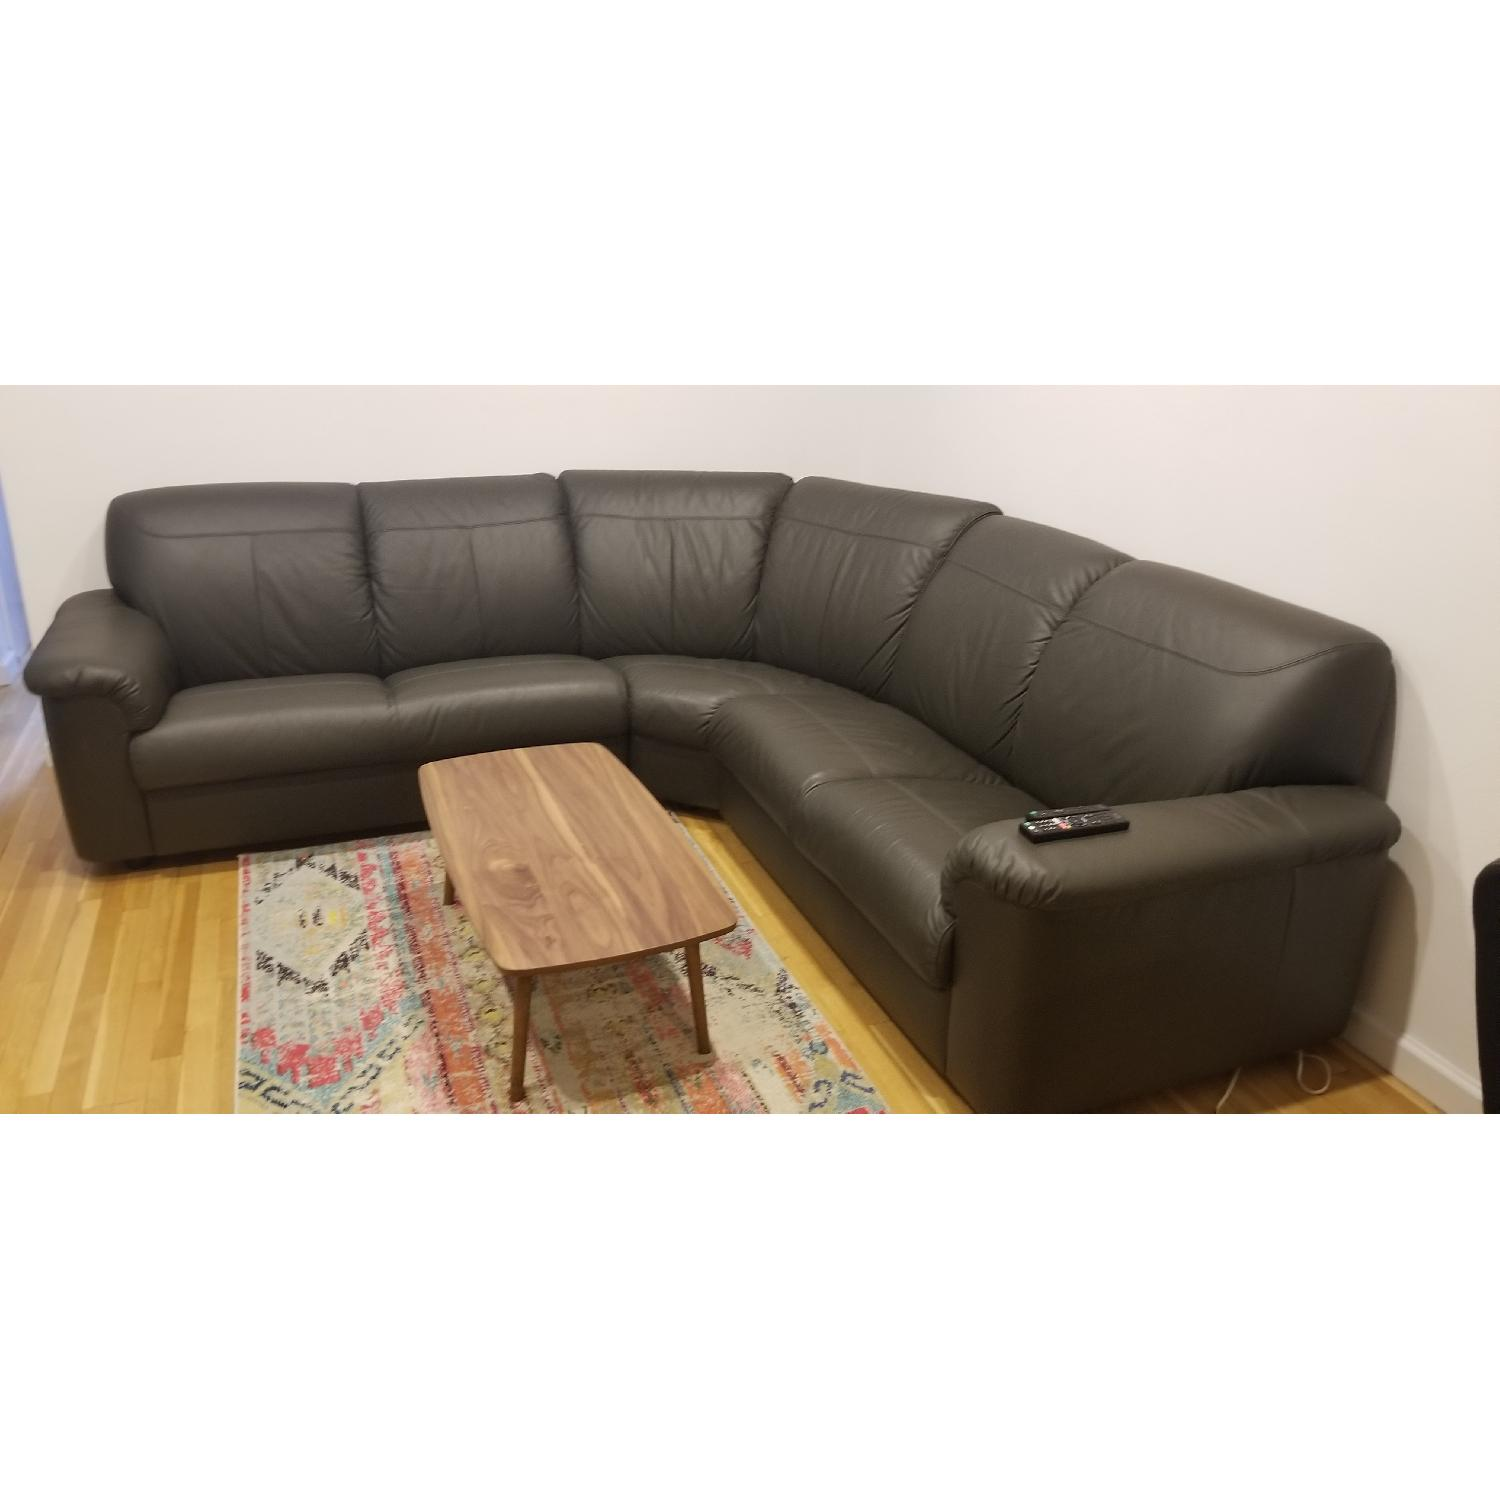 Ikea Timsfors Faux Leather Sectional Sofa - image-1